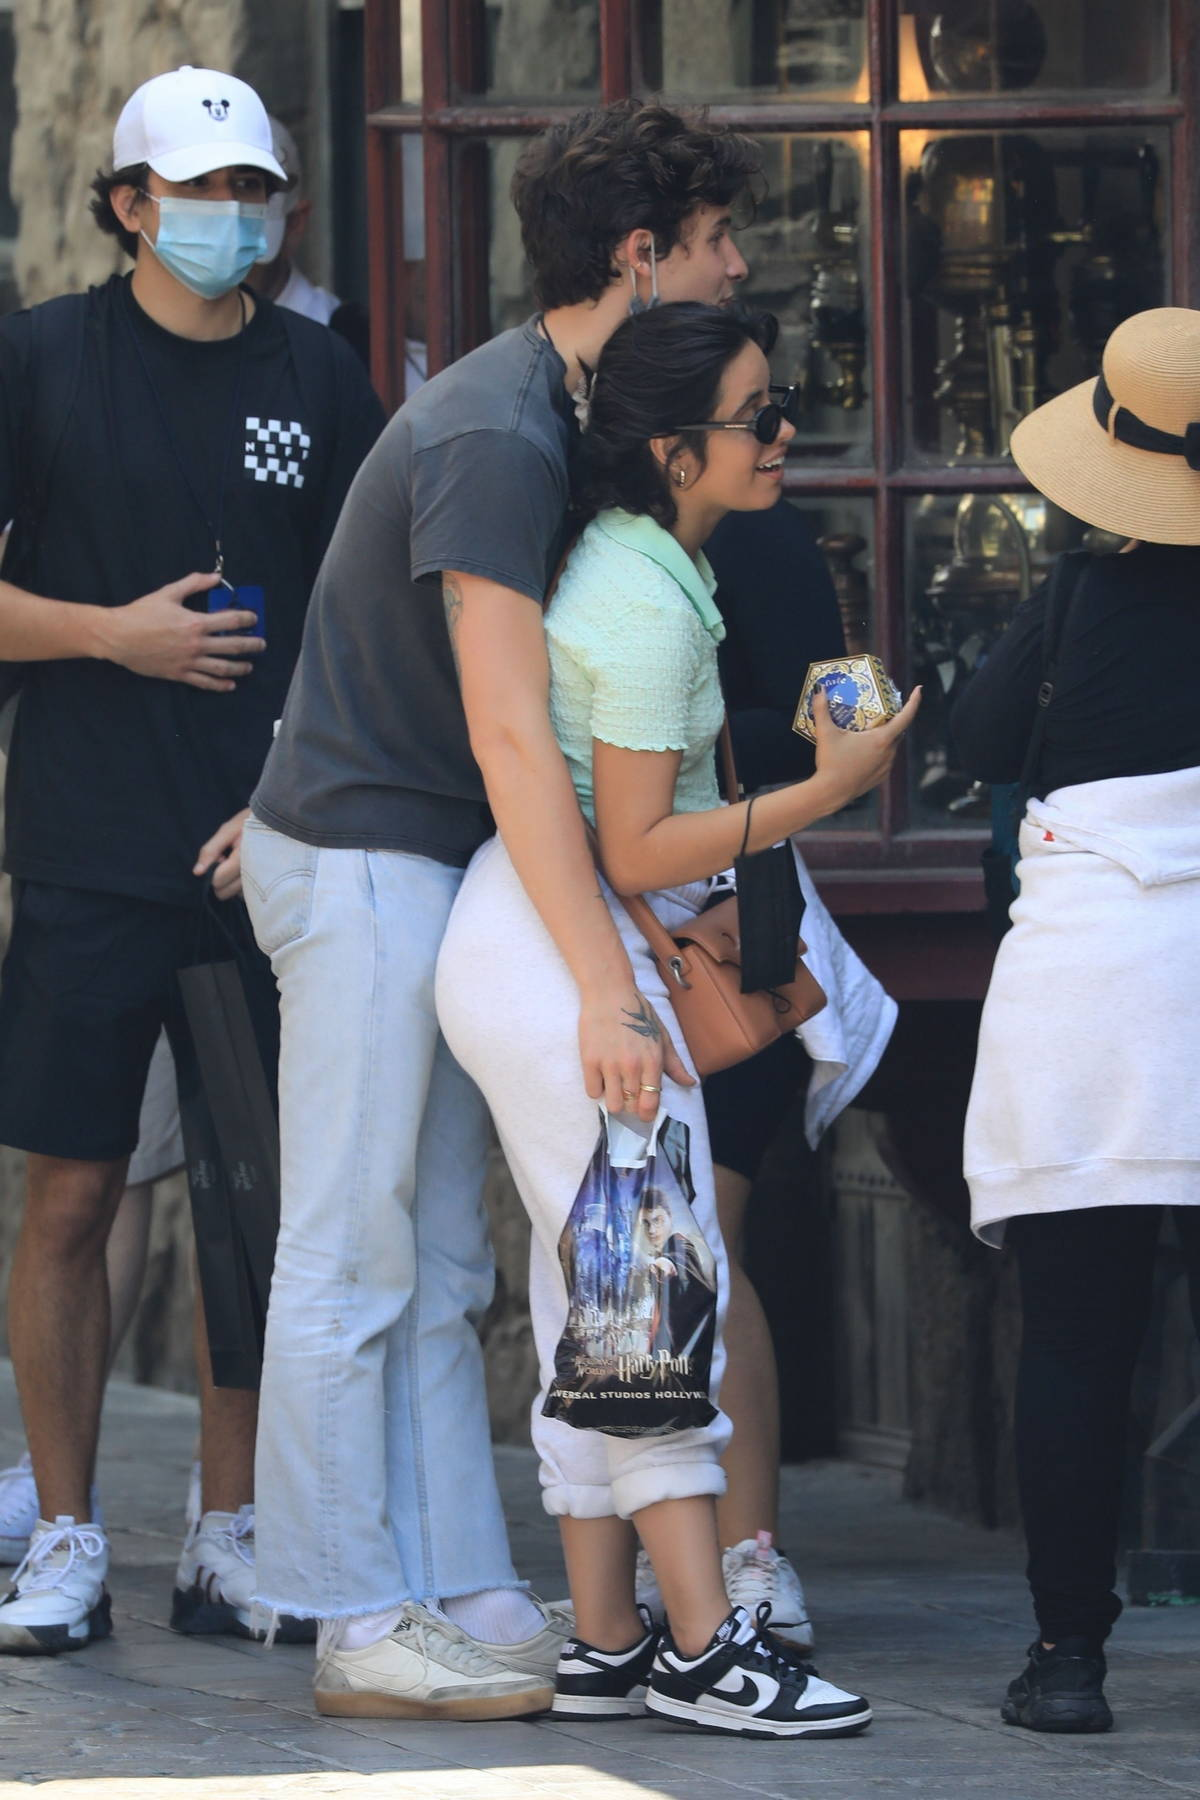 Camila Cabello and Shawn Mendes enjoy a day at Universal Studios in Los Angeles